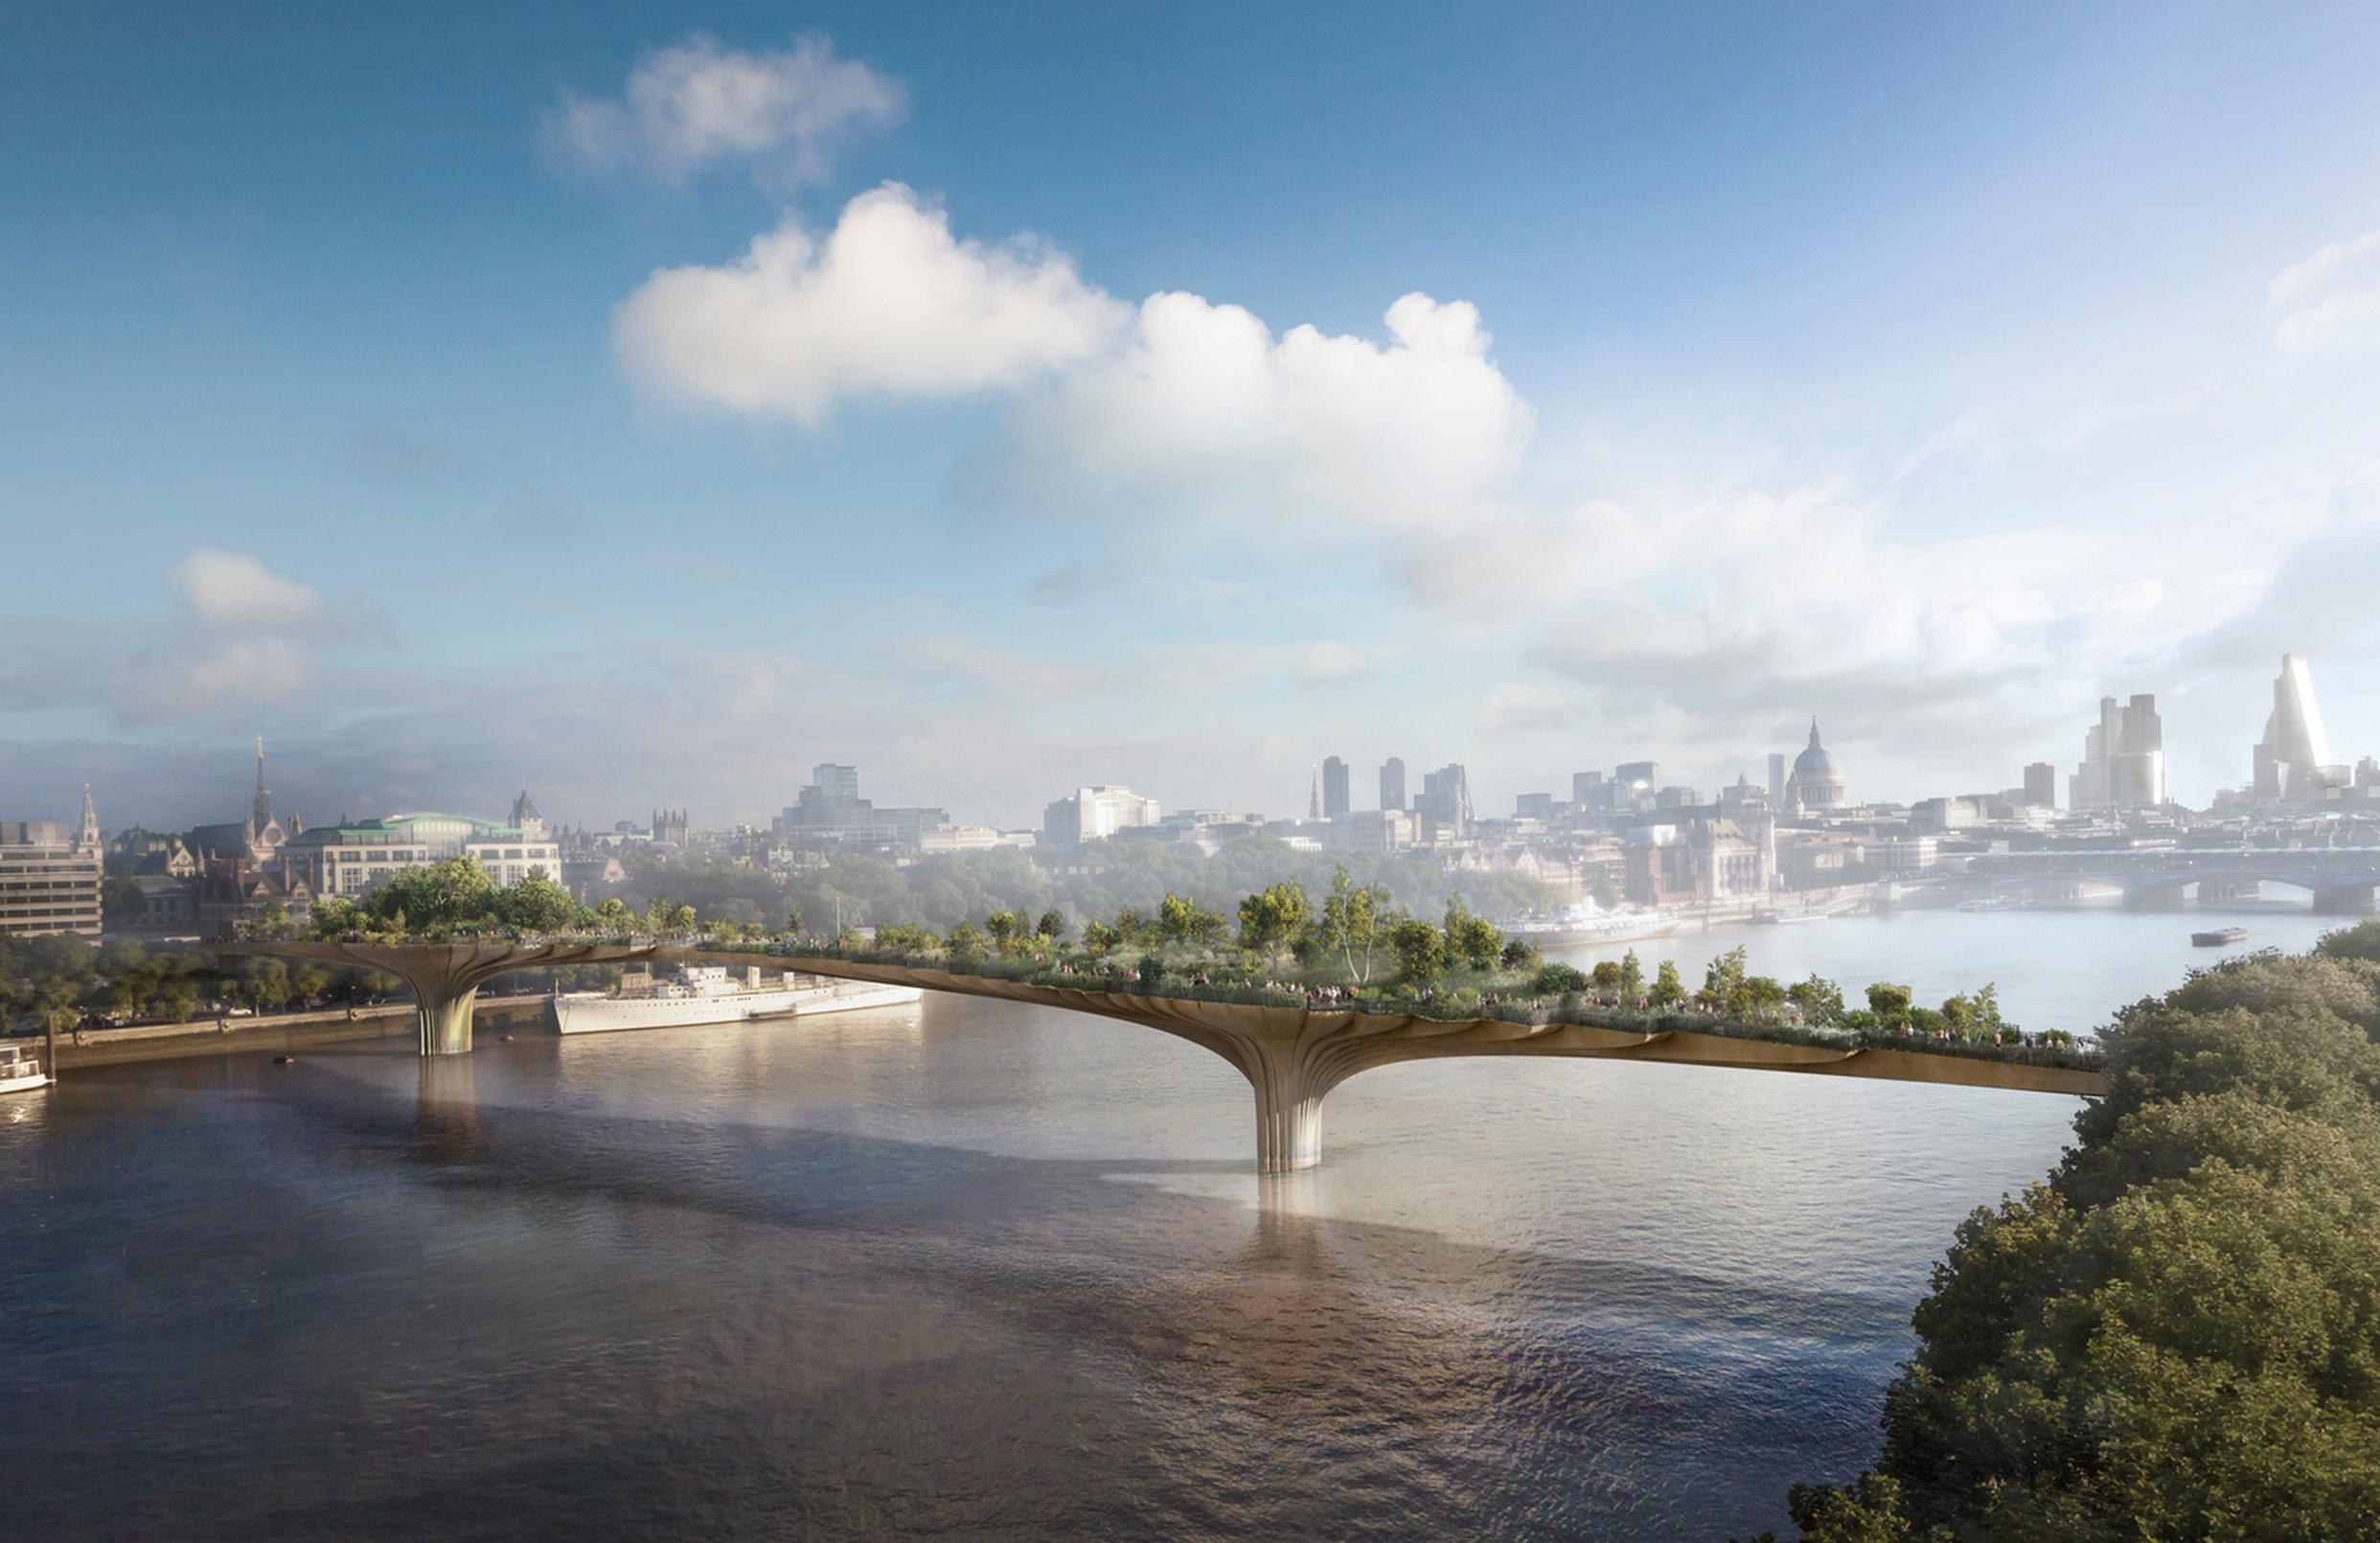 CGI presentation of the Garden Bridge, which has been designed by Thomas Heatherwick